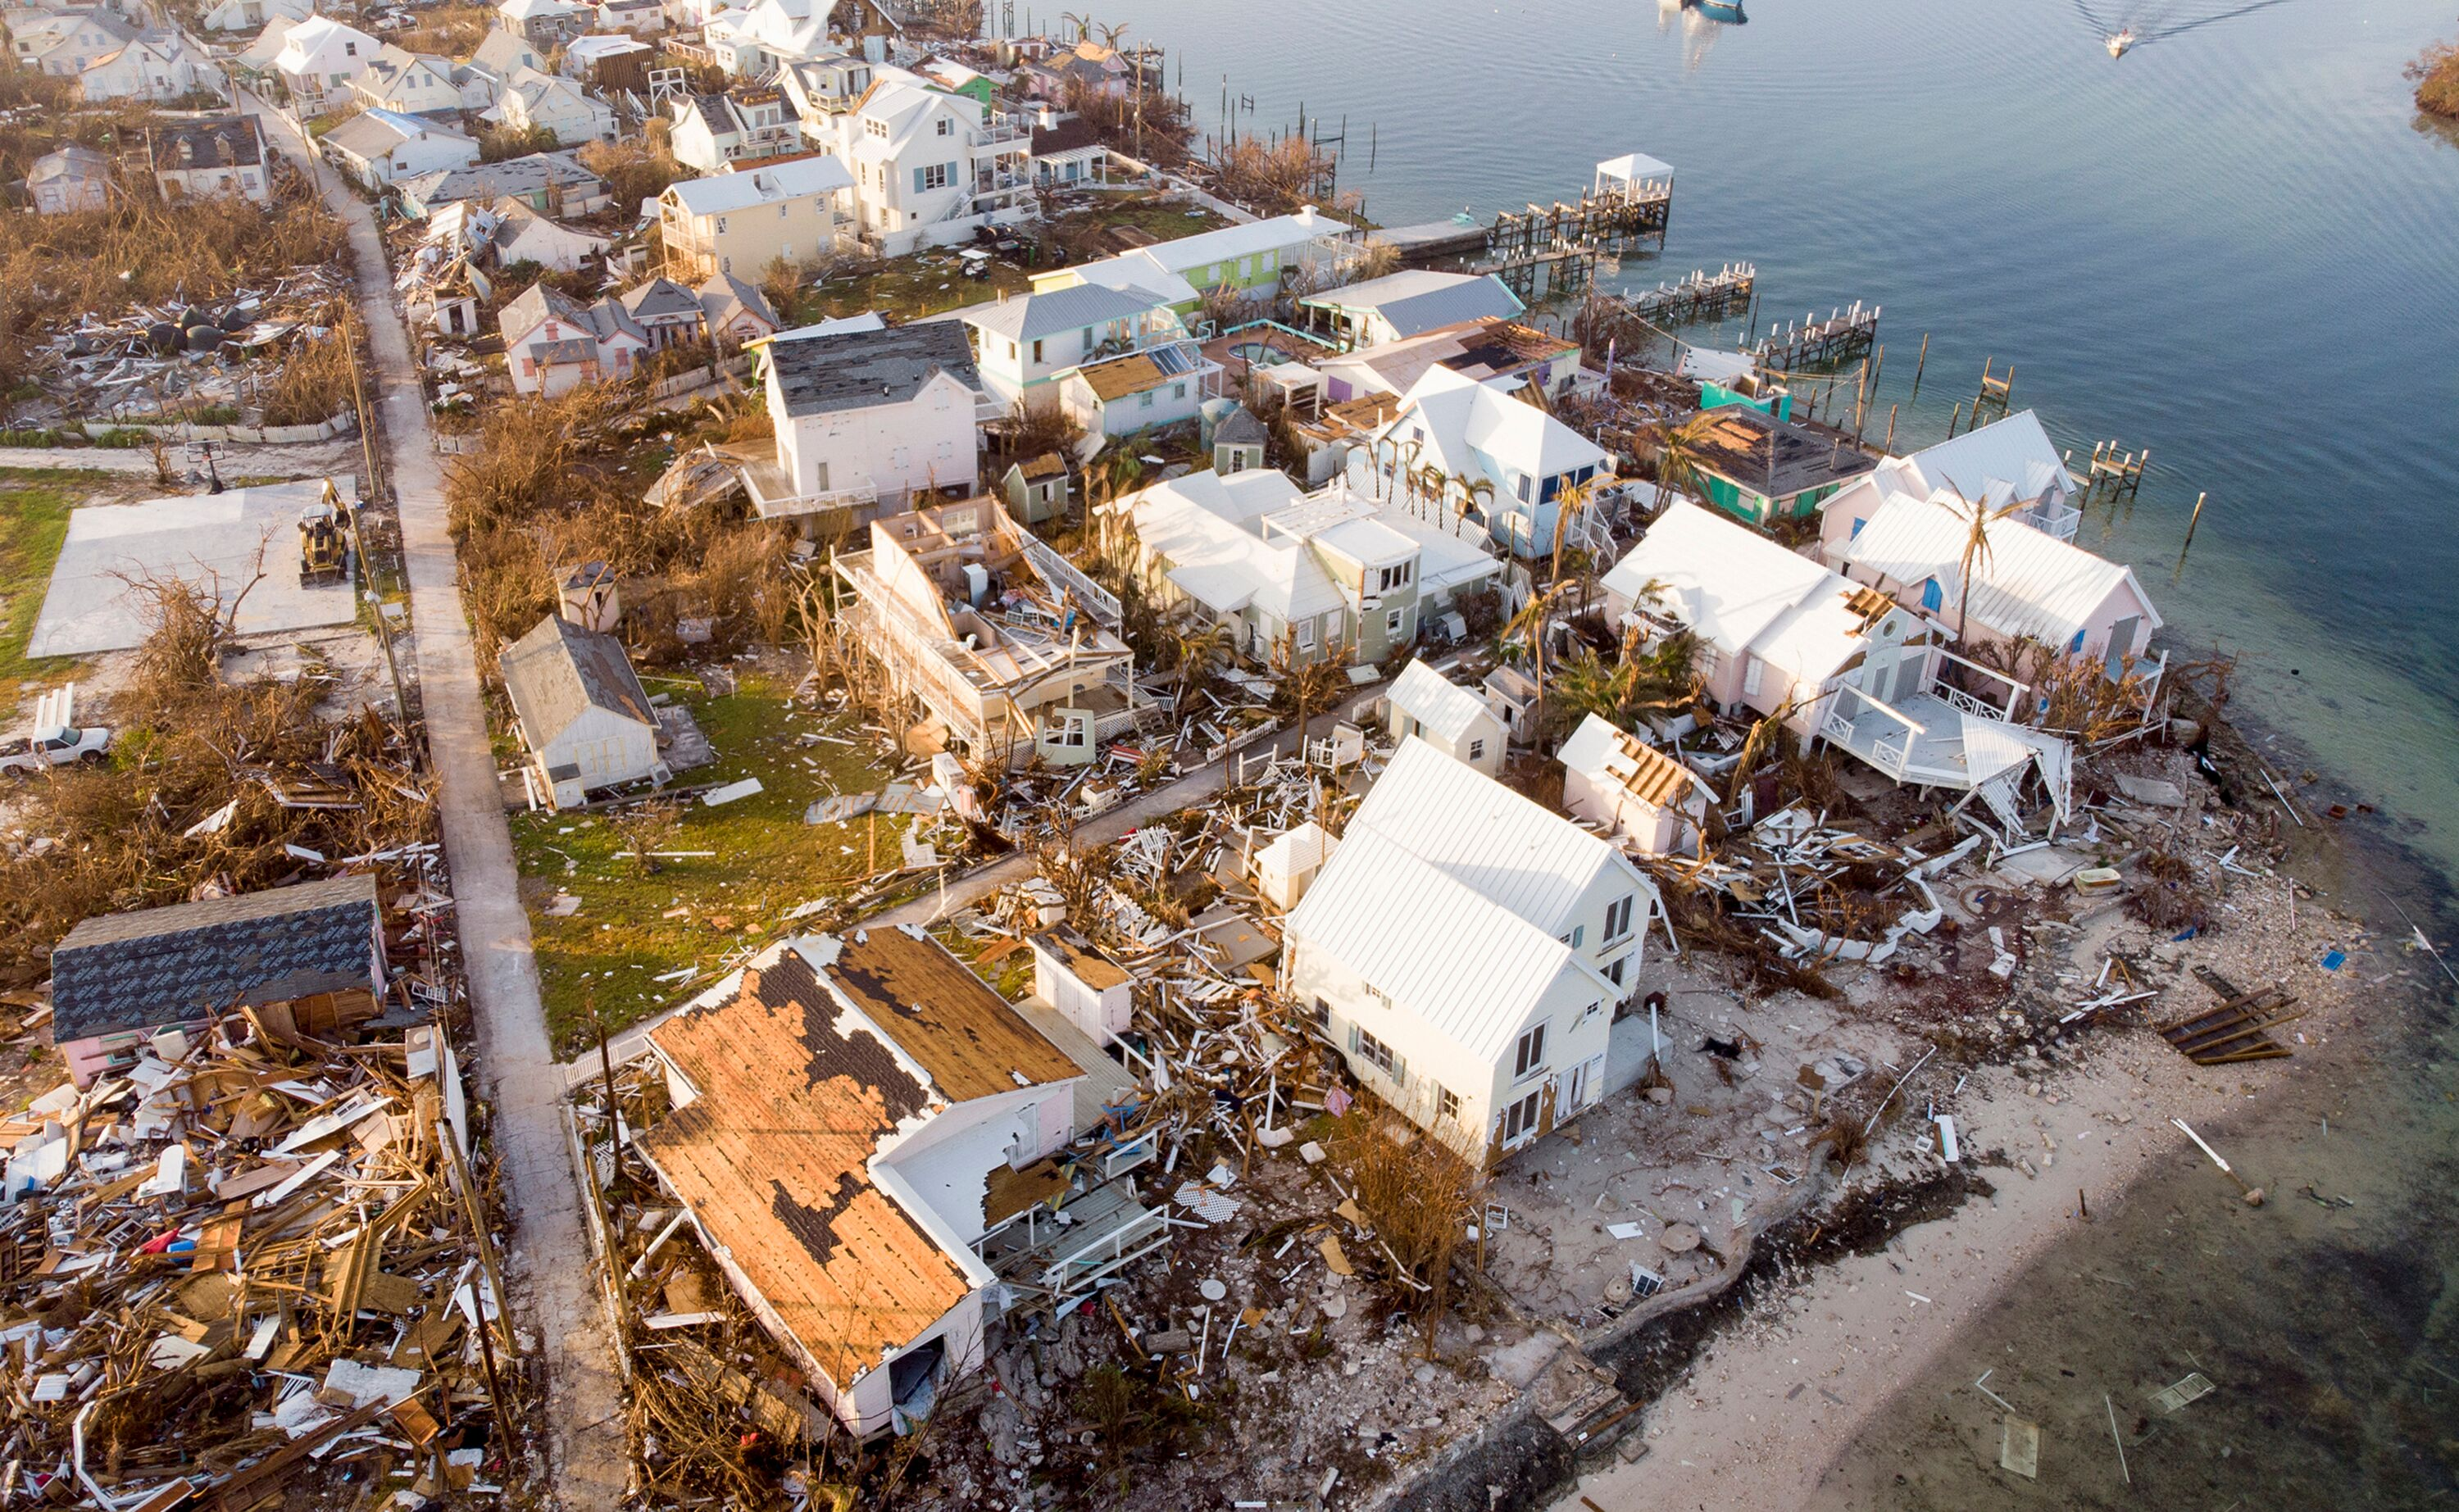 Homes destroyed by hurricane Dorian in the Bahamas | Photo: Getty Images